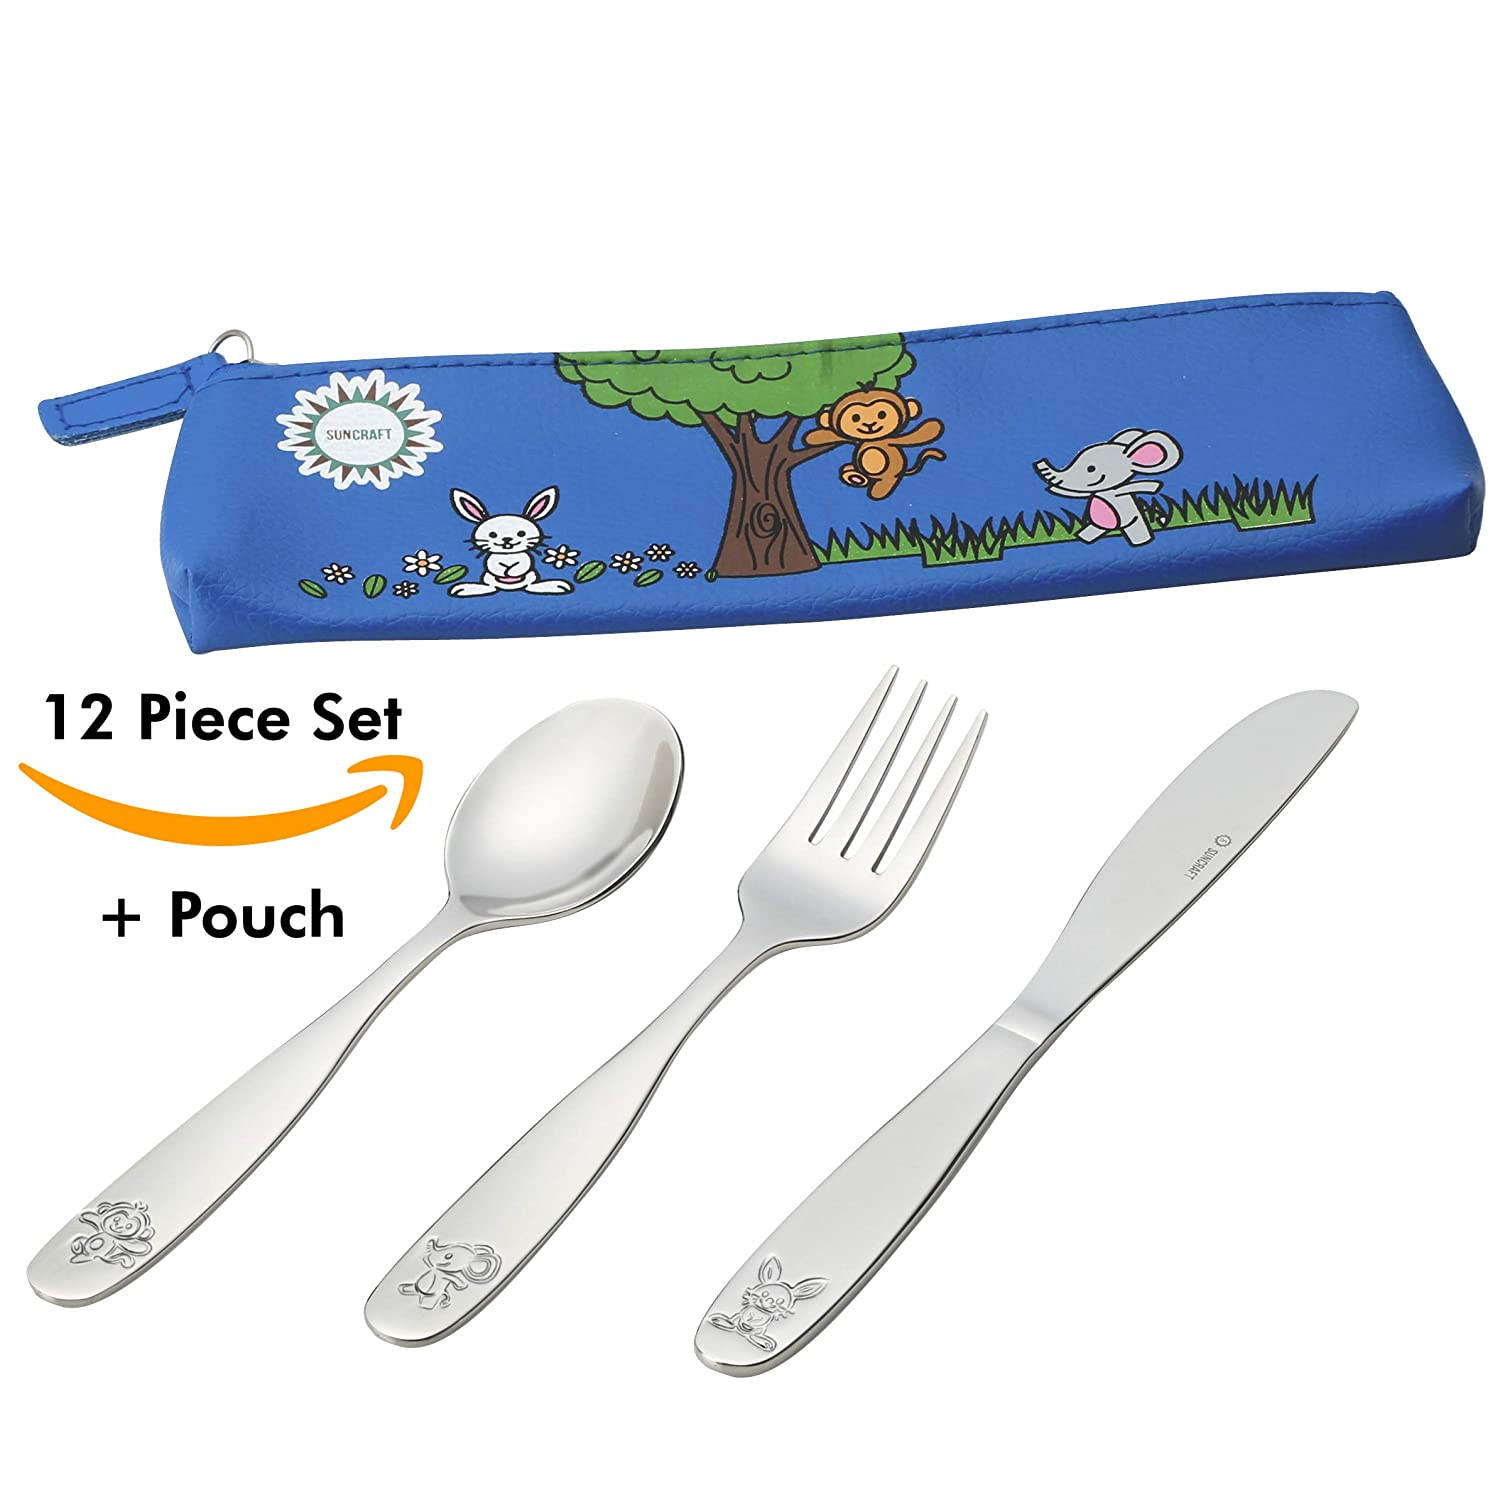 18/10 Stainless Steel Kids Silverware, Child and Toddler Safe Cutlery Flatware - 12 Piece Eating Utensil Set with 4 Knives, 4 Forks, 4 Spoons - Portable Carrying Pouch Included SunCraft